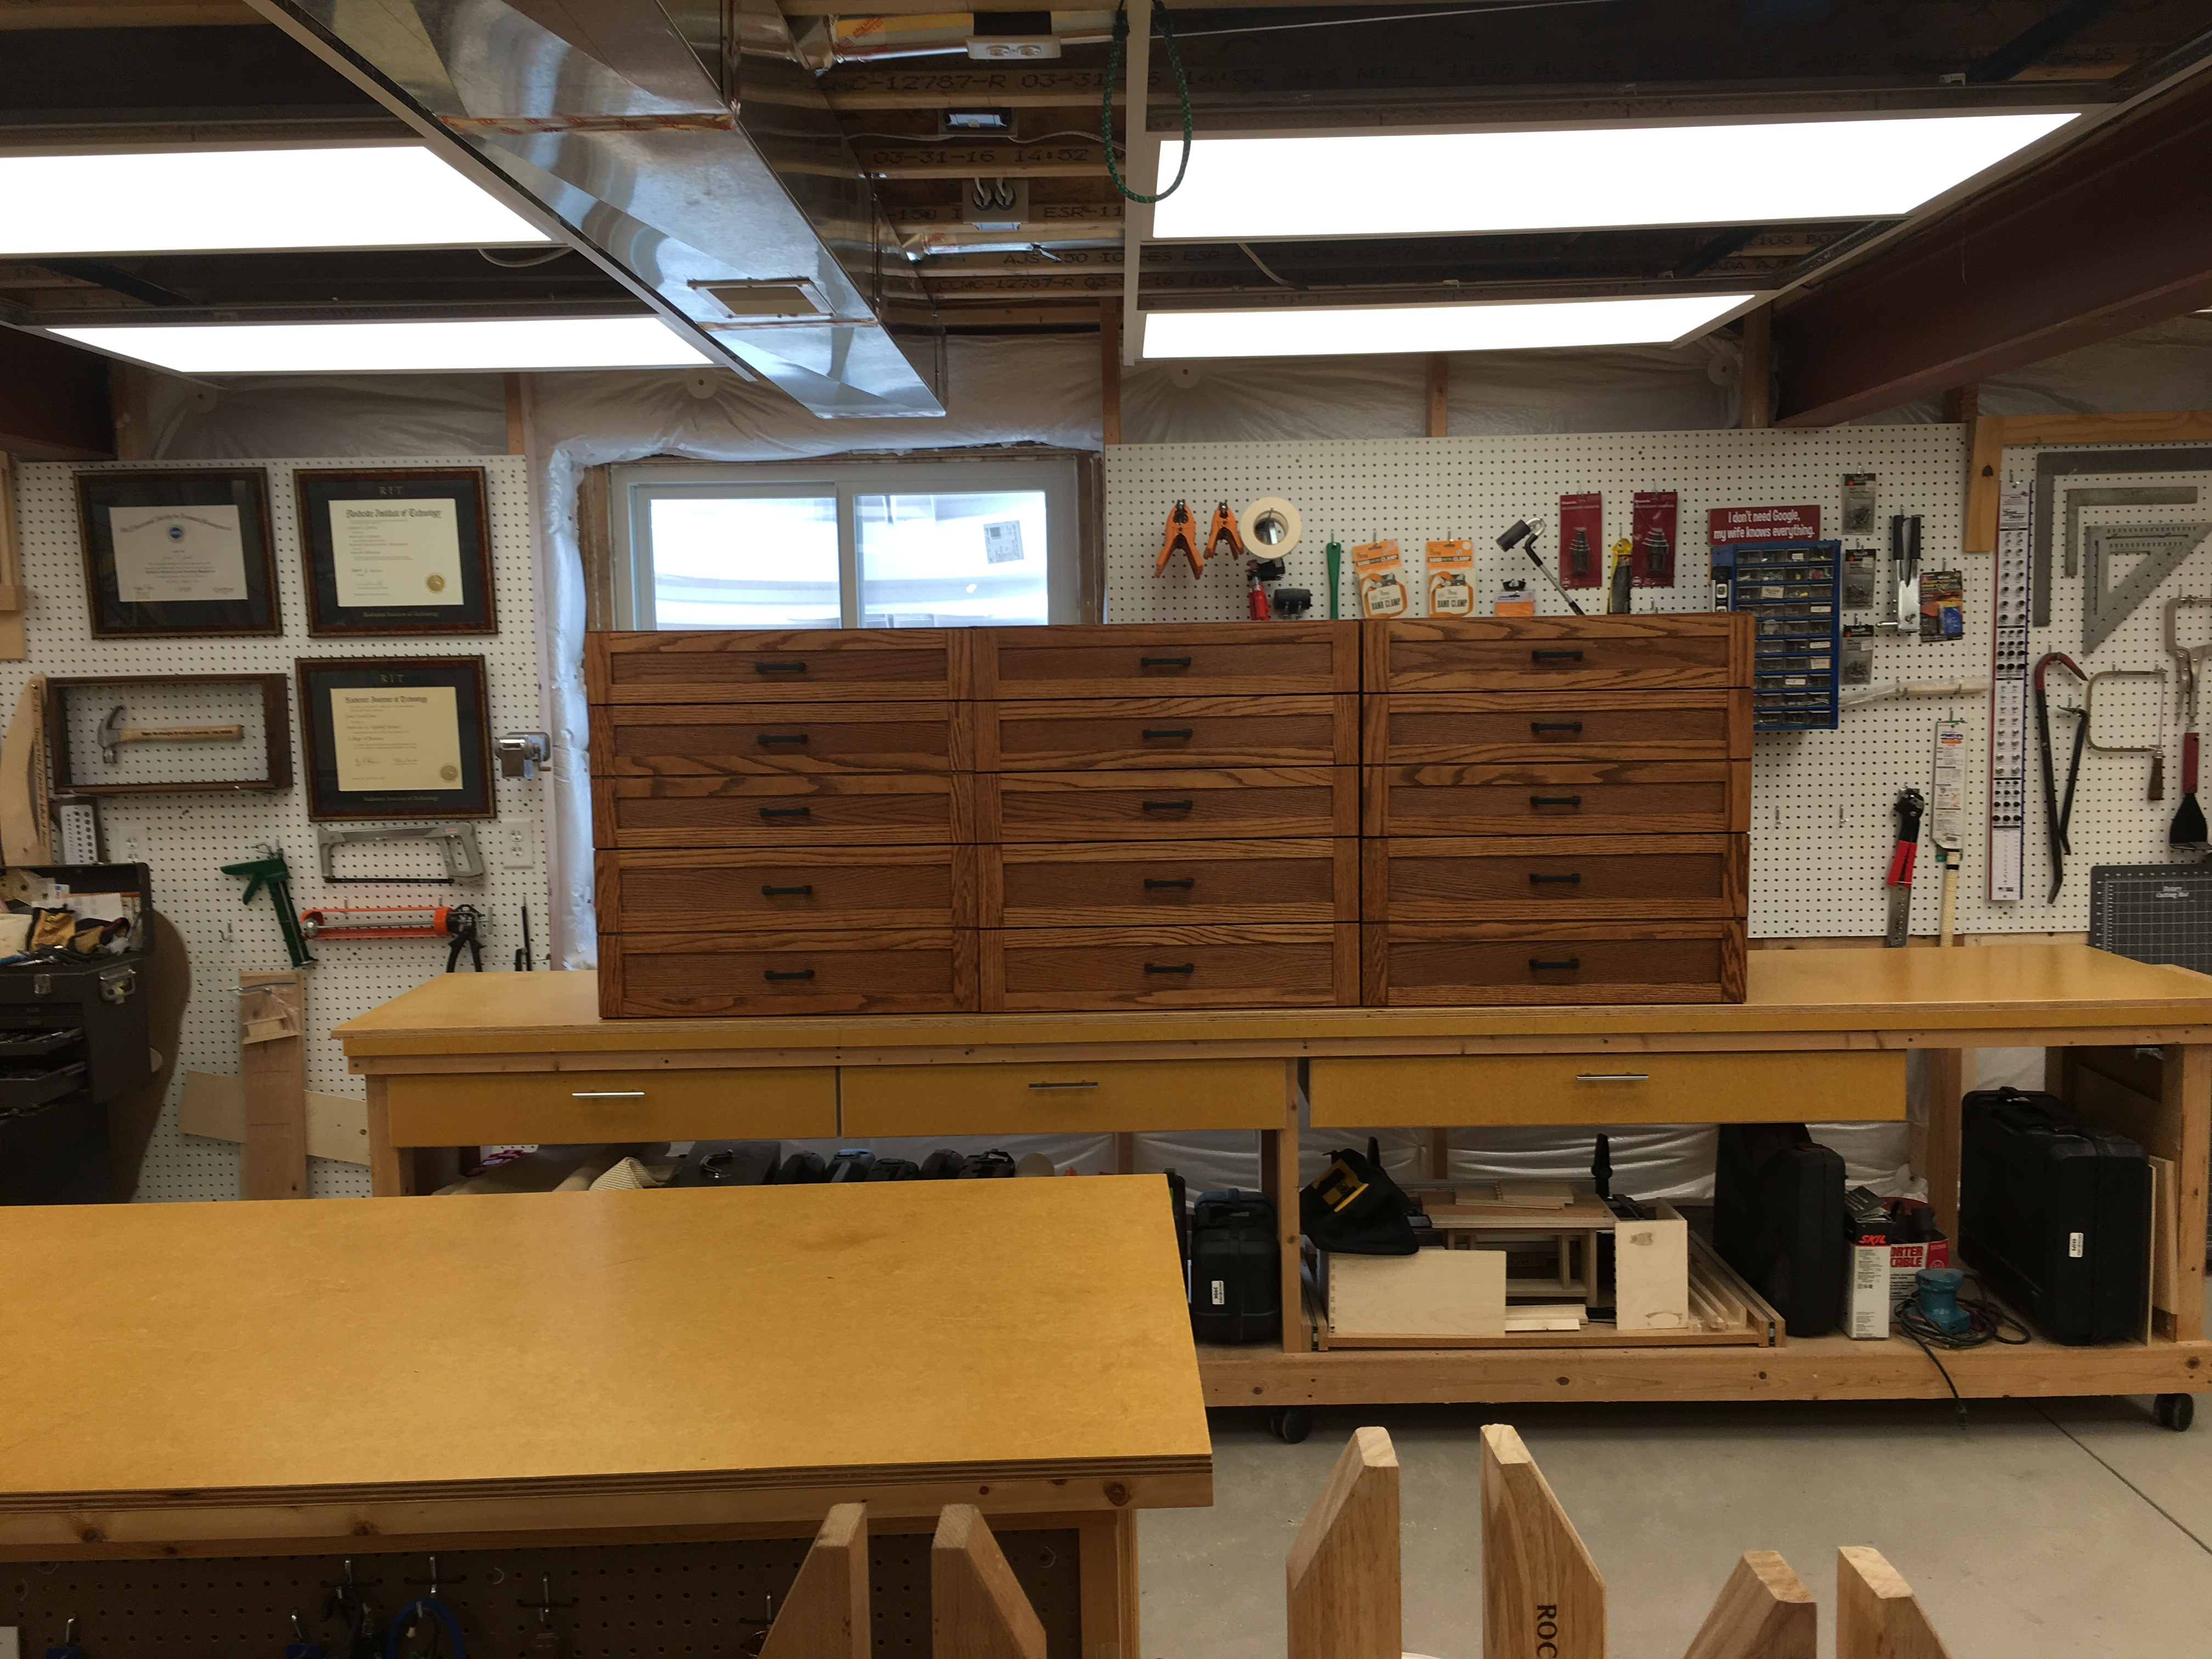 11 drawer sewing cabinets by James Jones